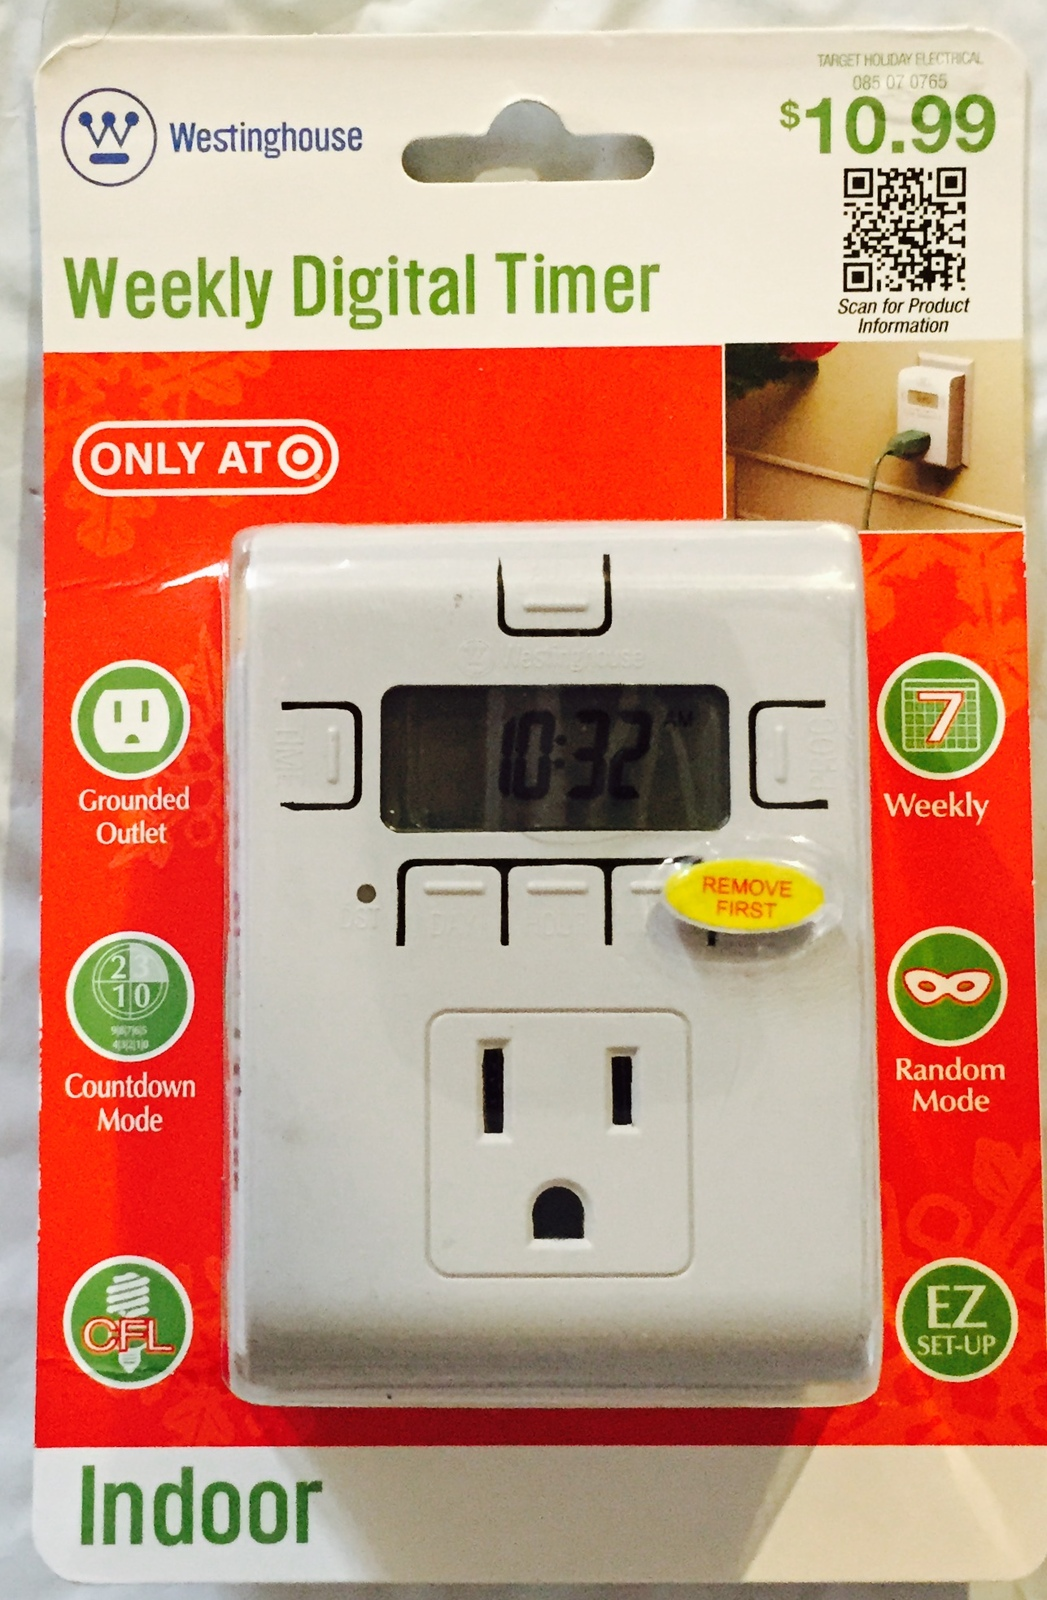 Westinghouse Time Capsules: Westinghouse: Weekly Digital Timer (Indoor) Brand New